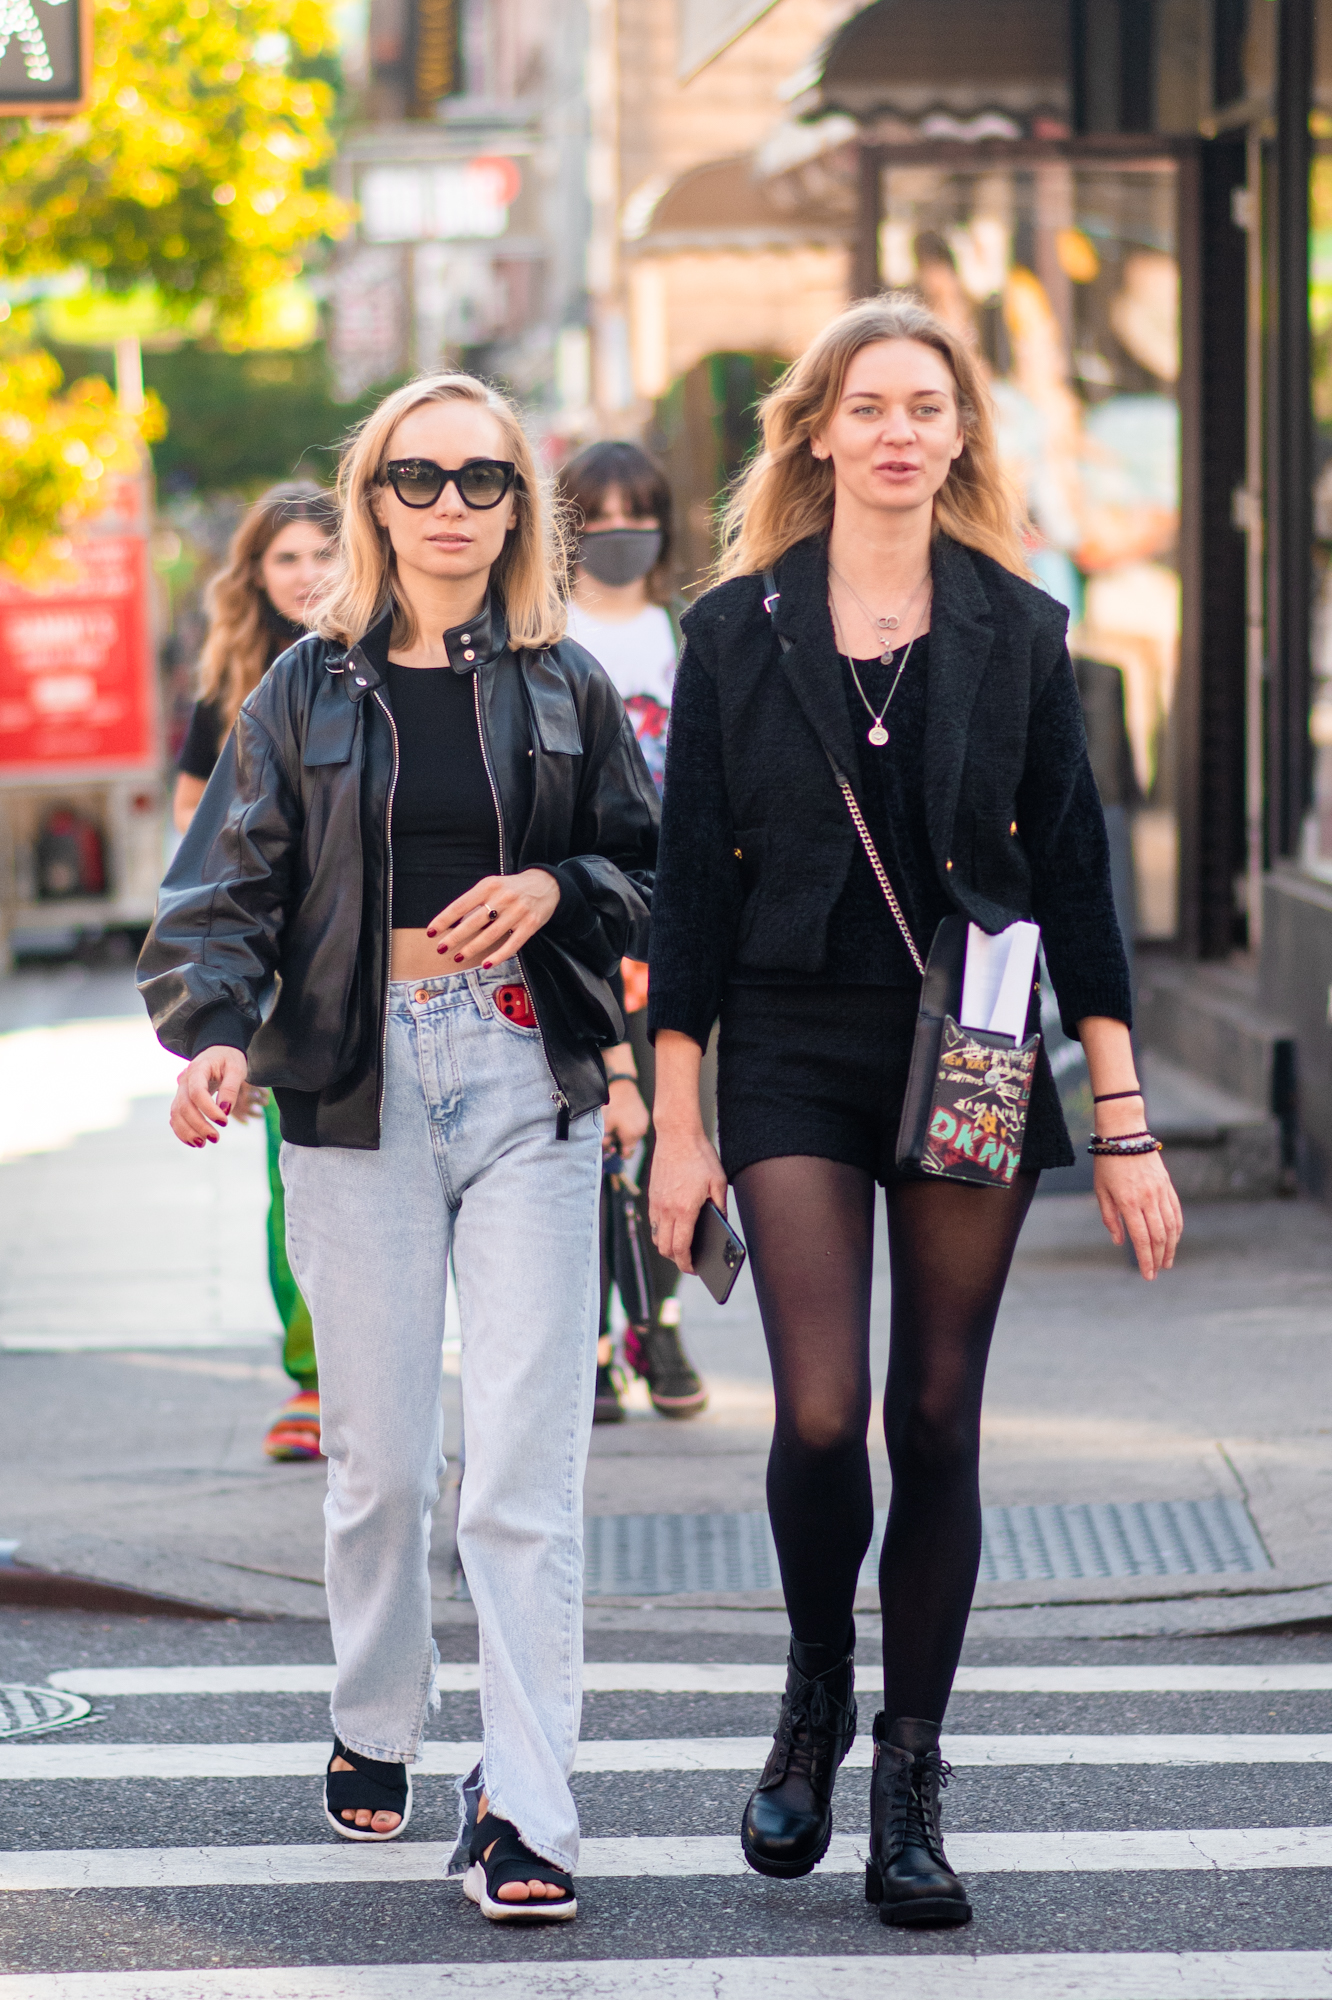 NYC street style fall outfit idea - women wearing all black fall outfits- Karya Schanilec NYC fashion photographer